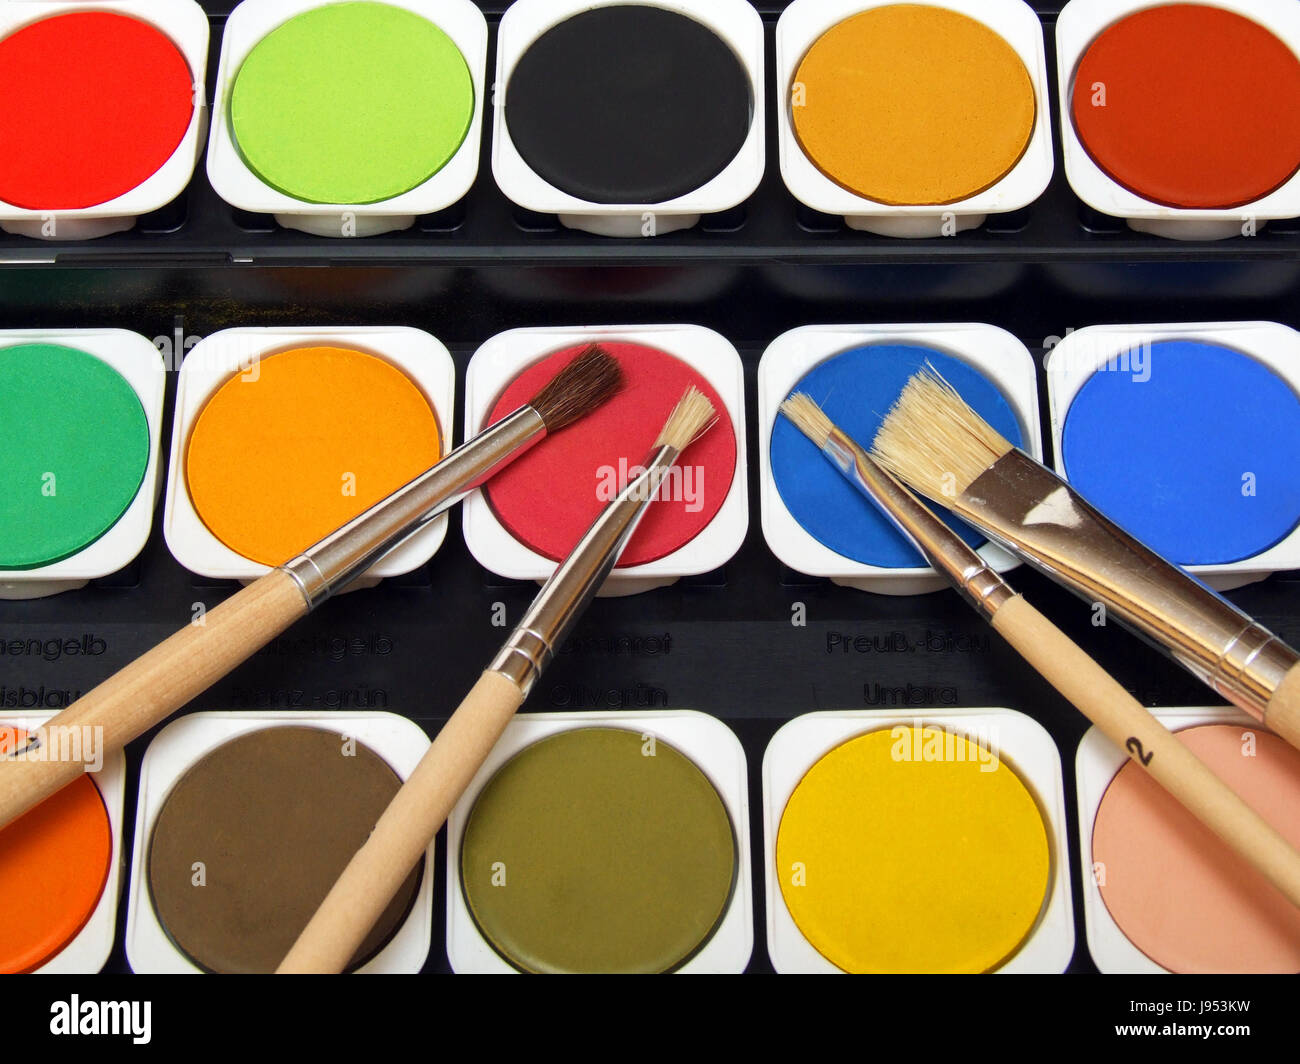 spare time, free time, leisure, leisure time, art, hobby, colour, creativity, Stock Photo